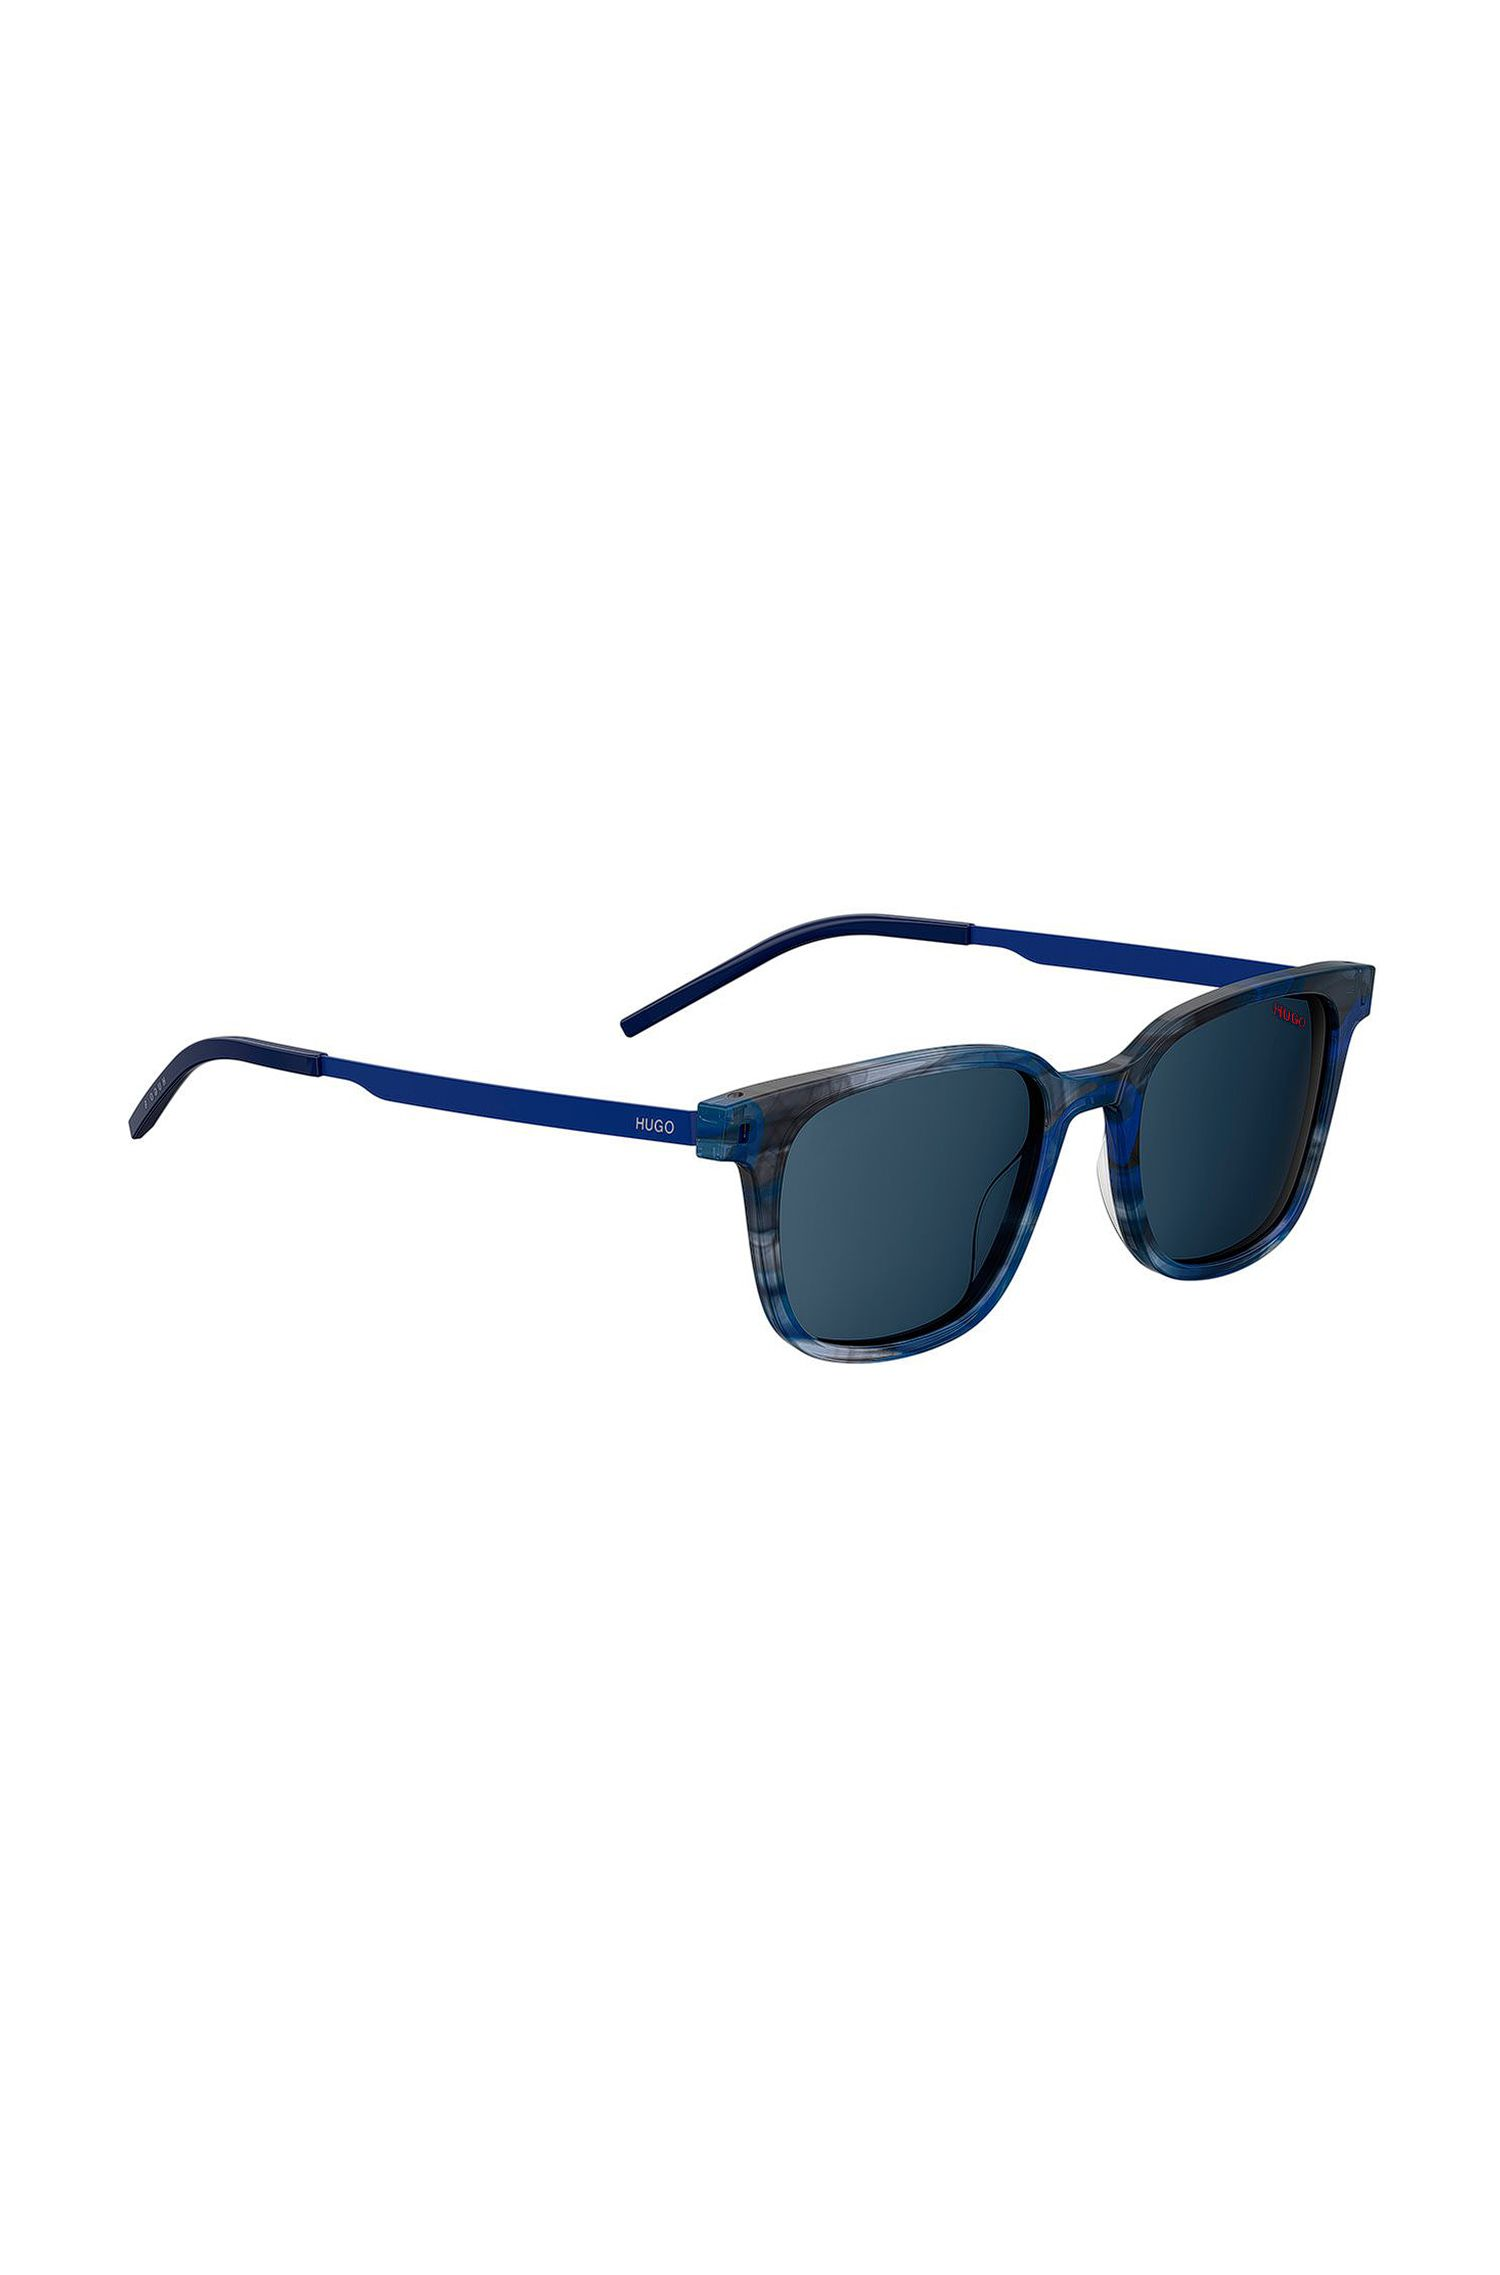 Blue-horn acetate sunglasses with ultra-thin blue temples, Donkerblauw